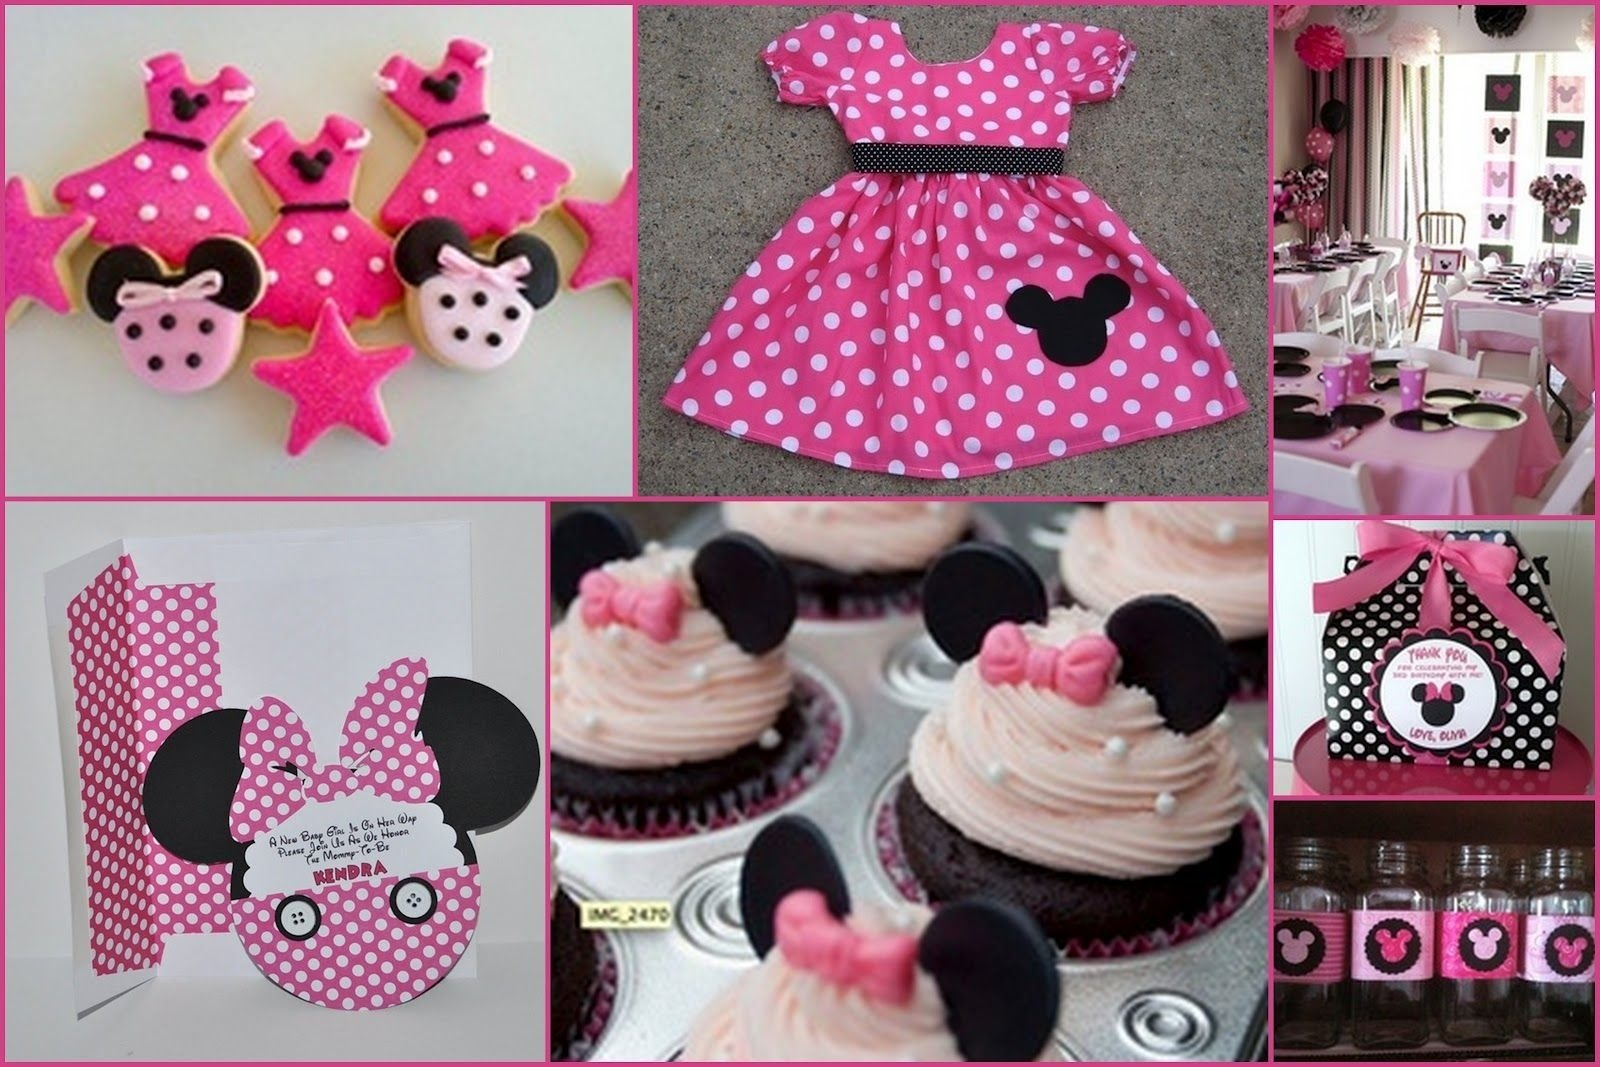 10 Ideal Minnie Mouse Party Ideas Pinterest 1 yr birthday outfits for girls loving these cookies and it would